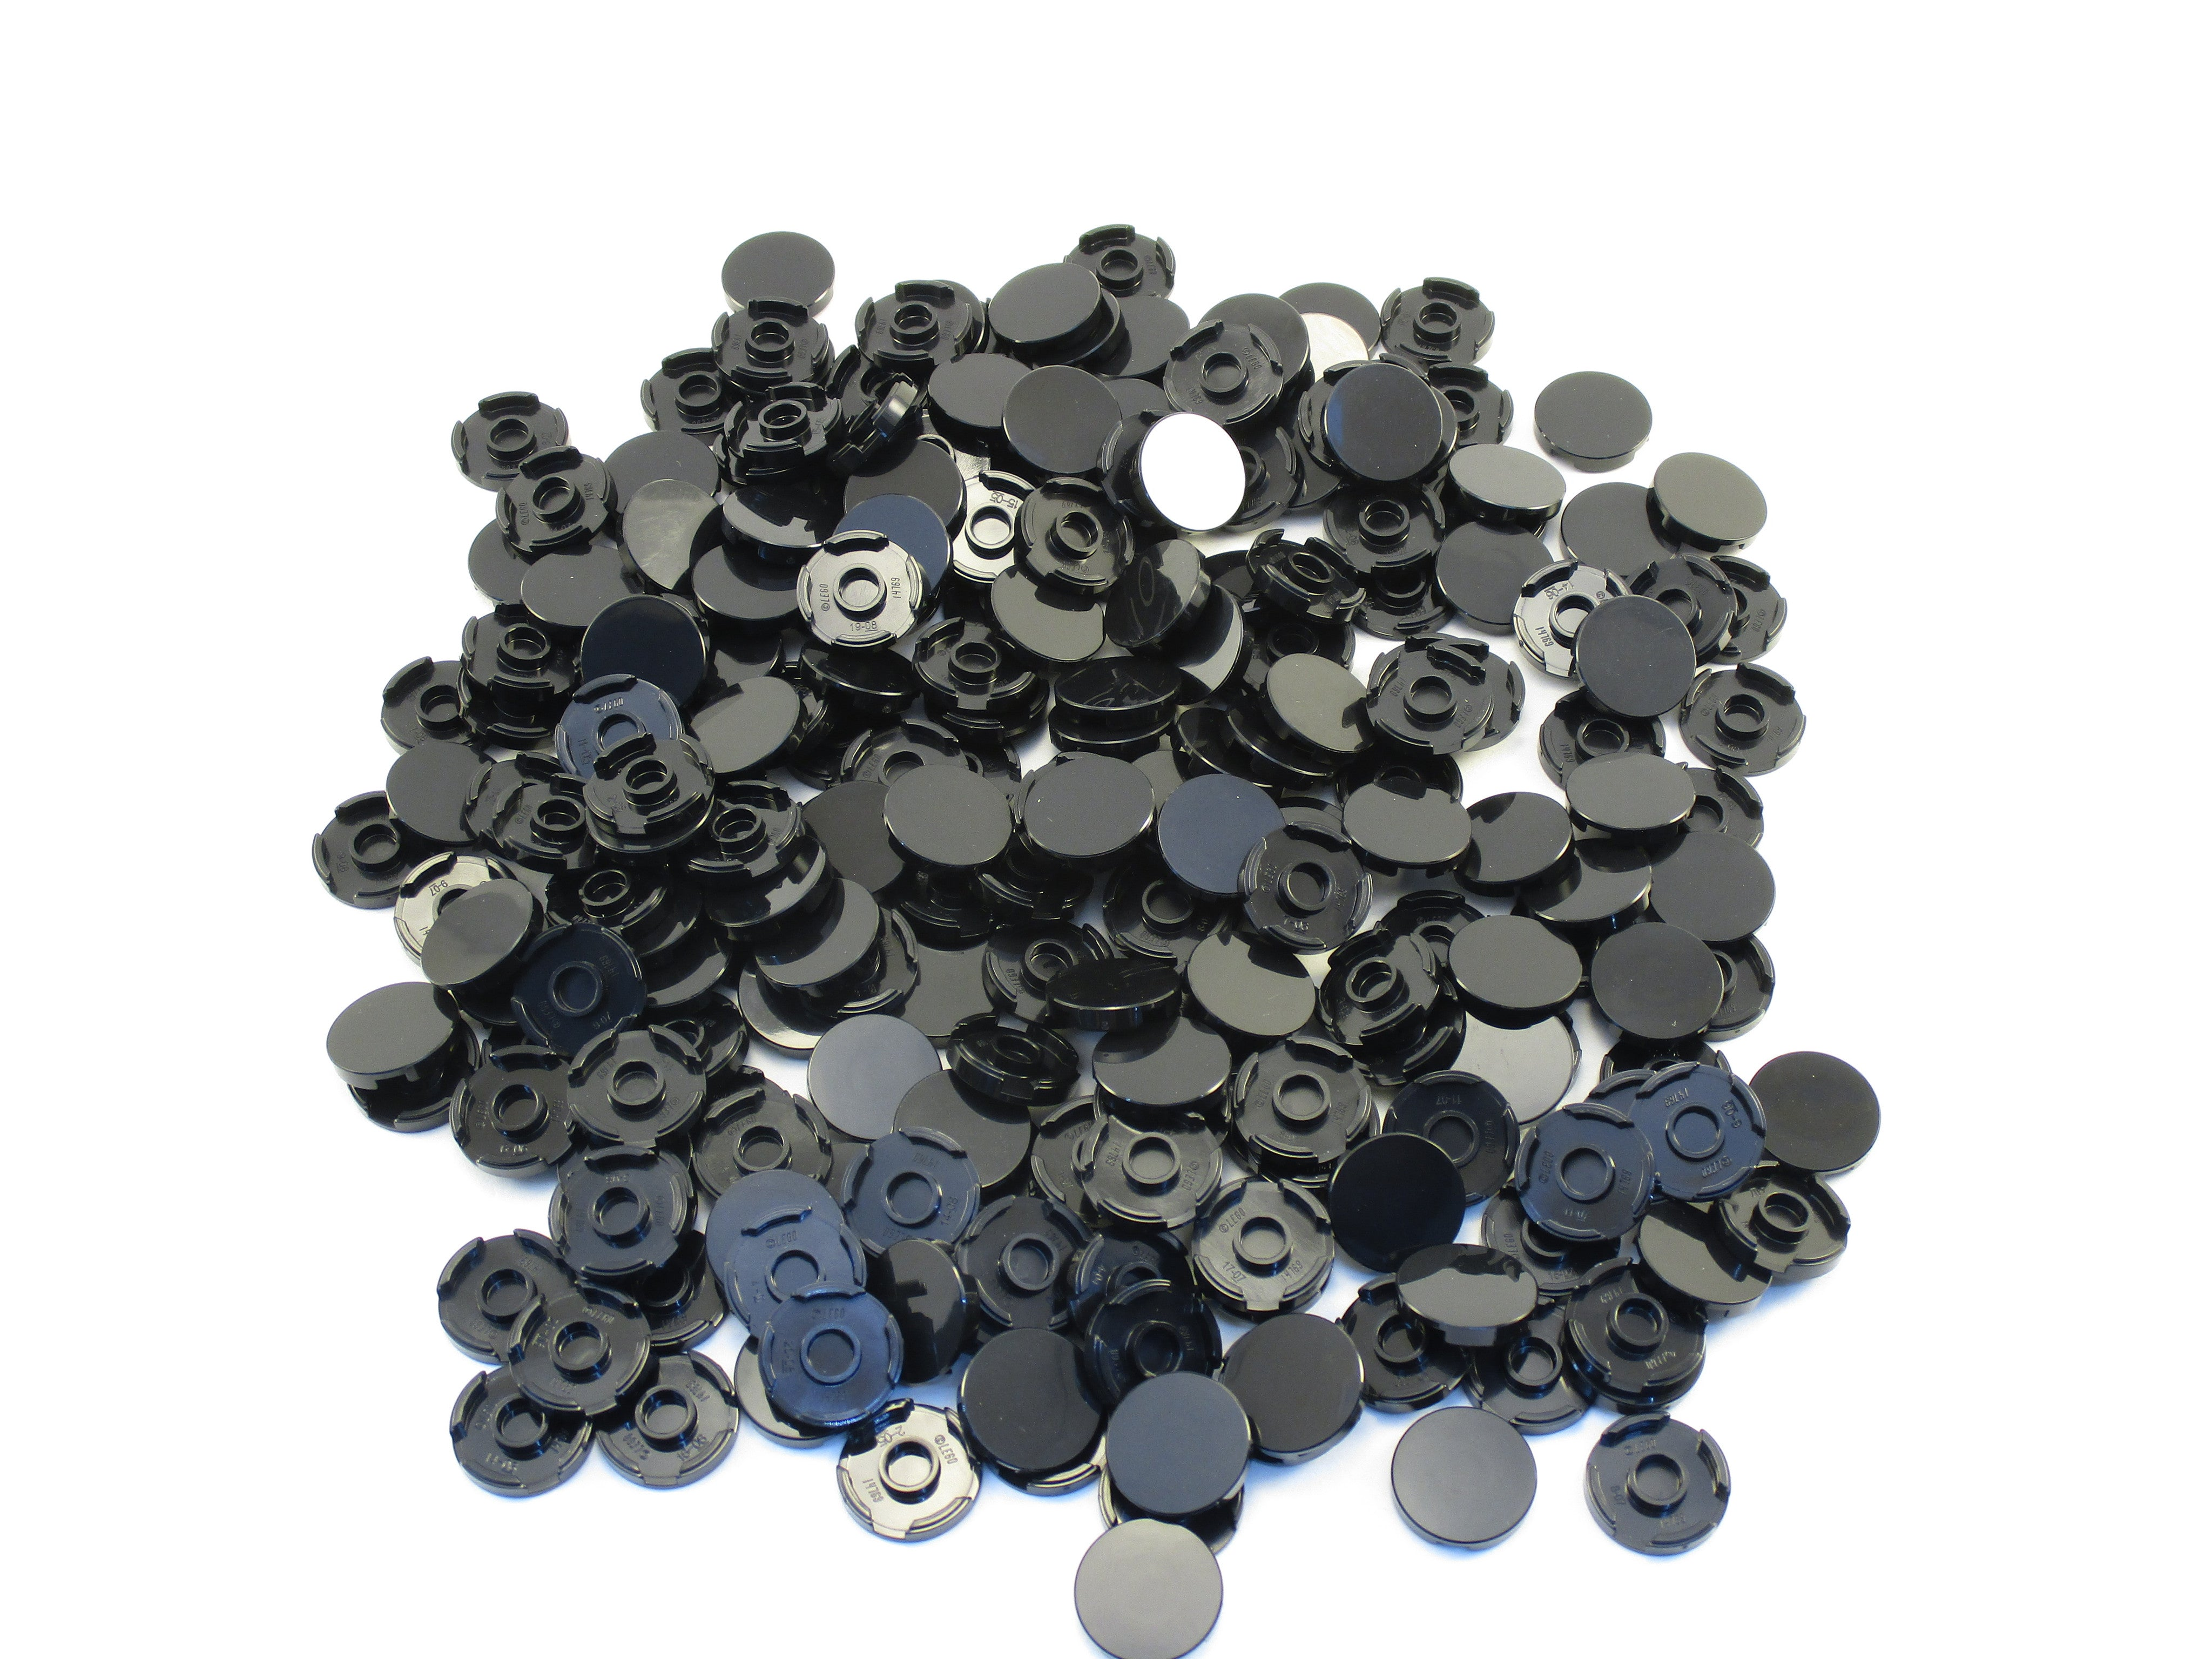 LEGO Black Tile Round 2x2 Lot of 100 Parts Pieces 14769